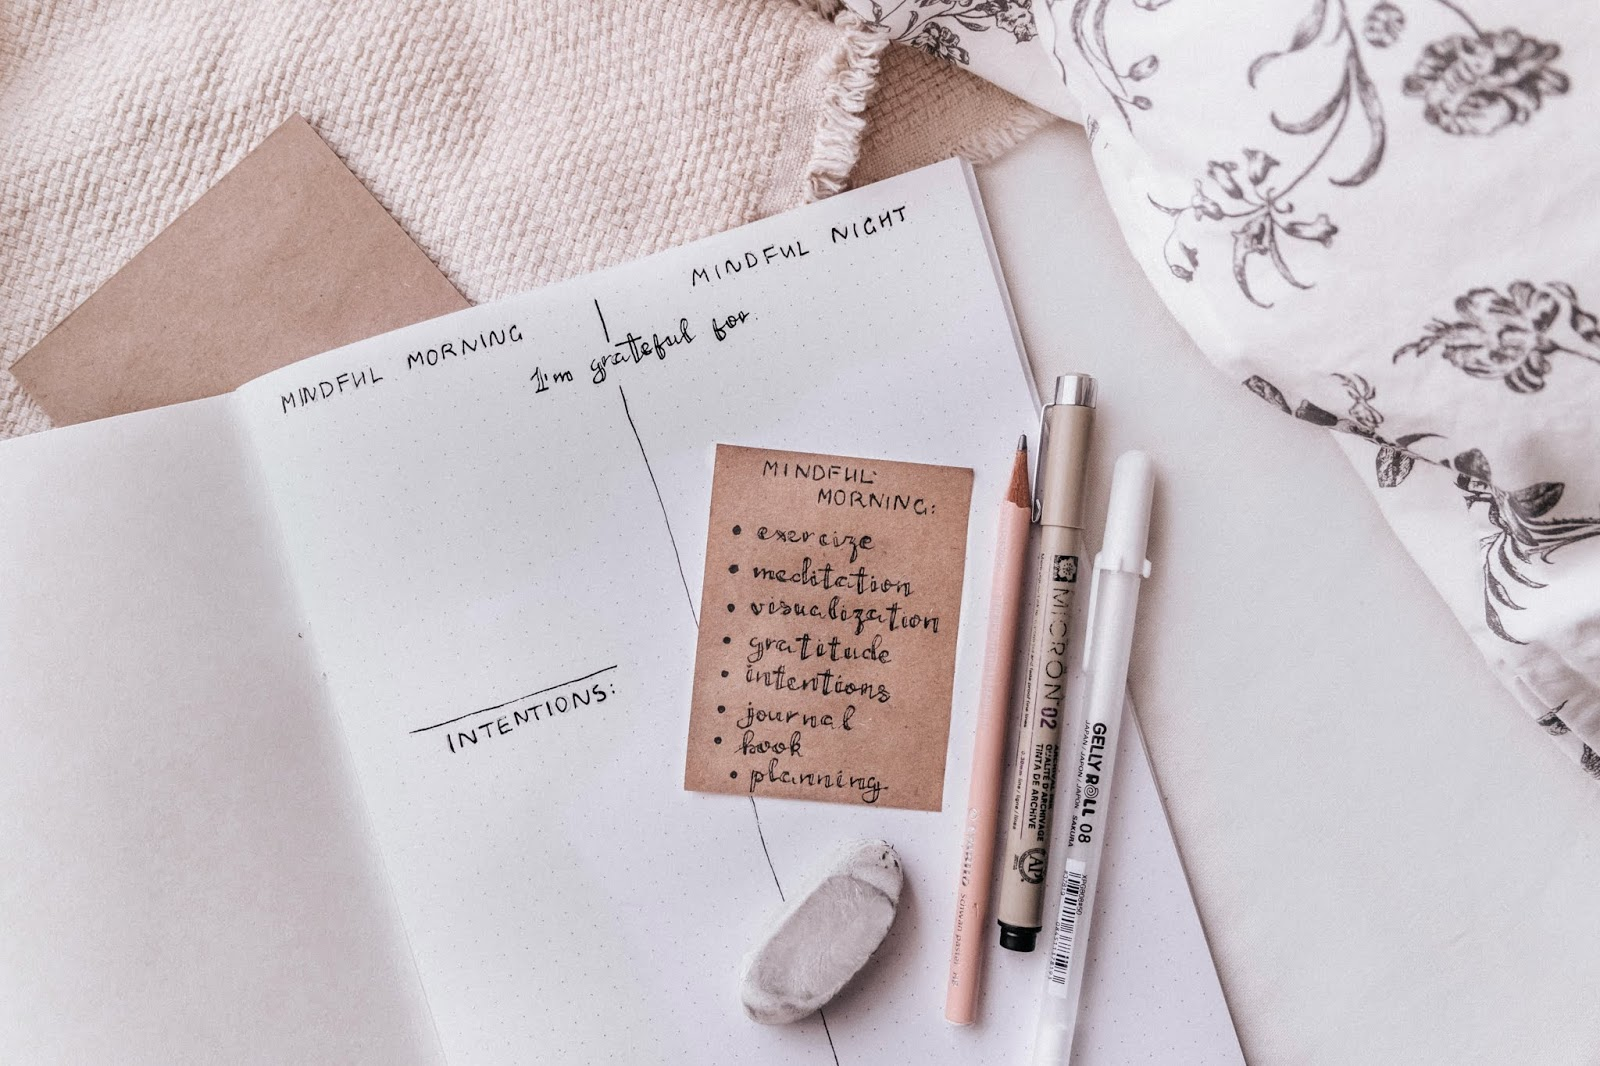 Little DIY: create mindful journal with me & what benefits